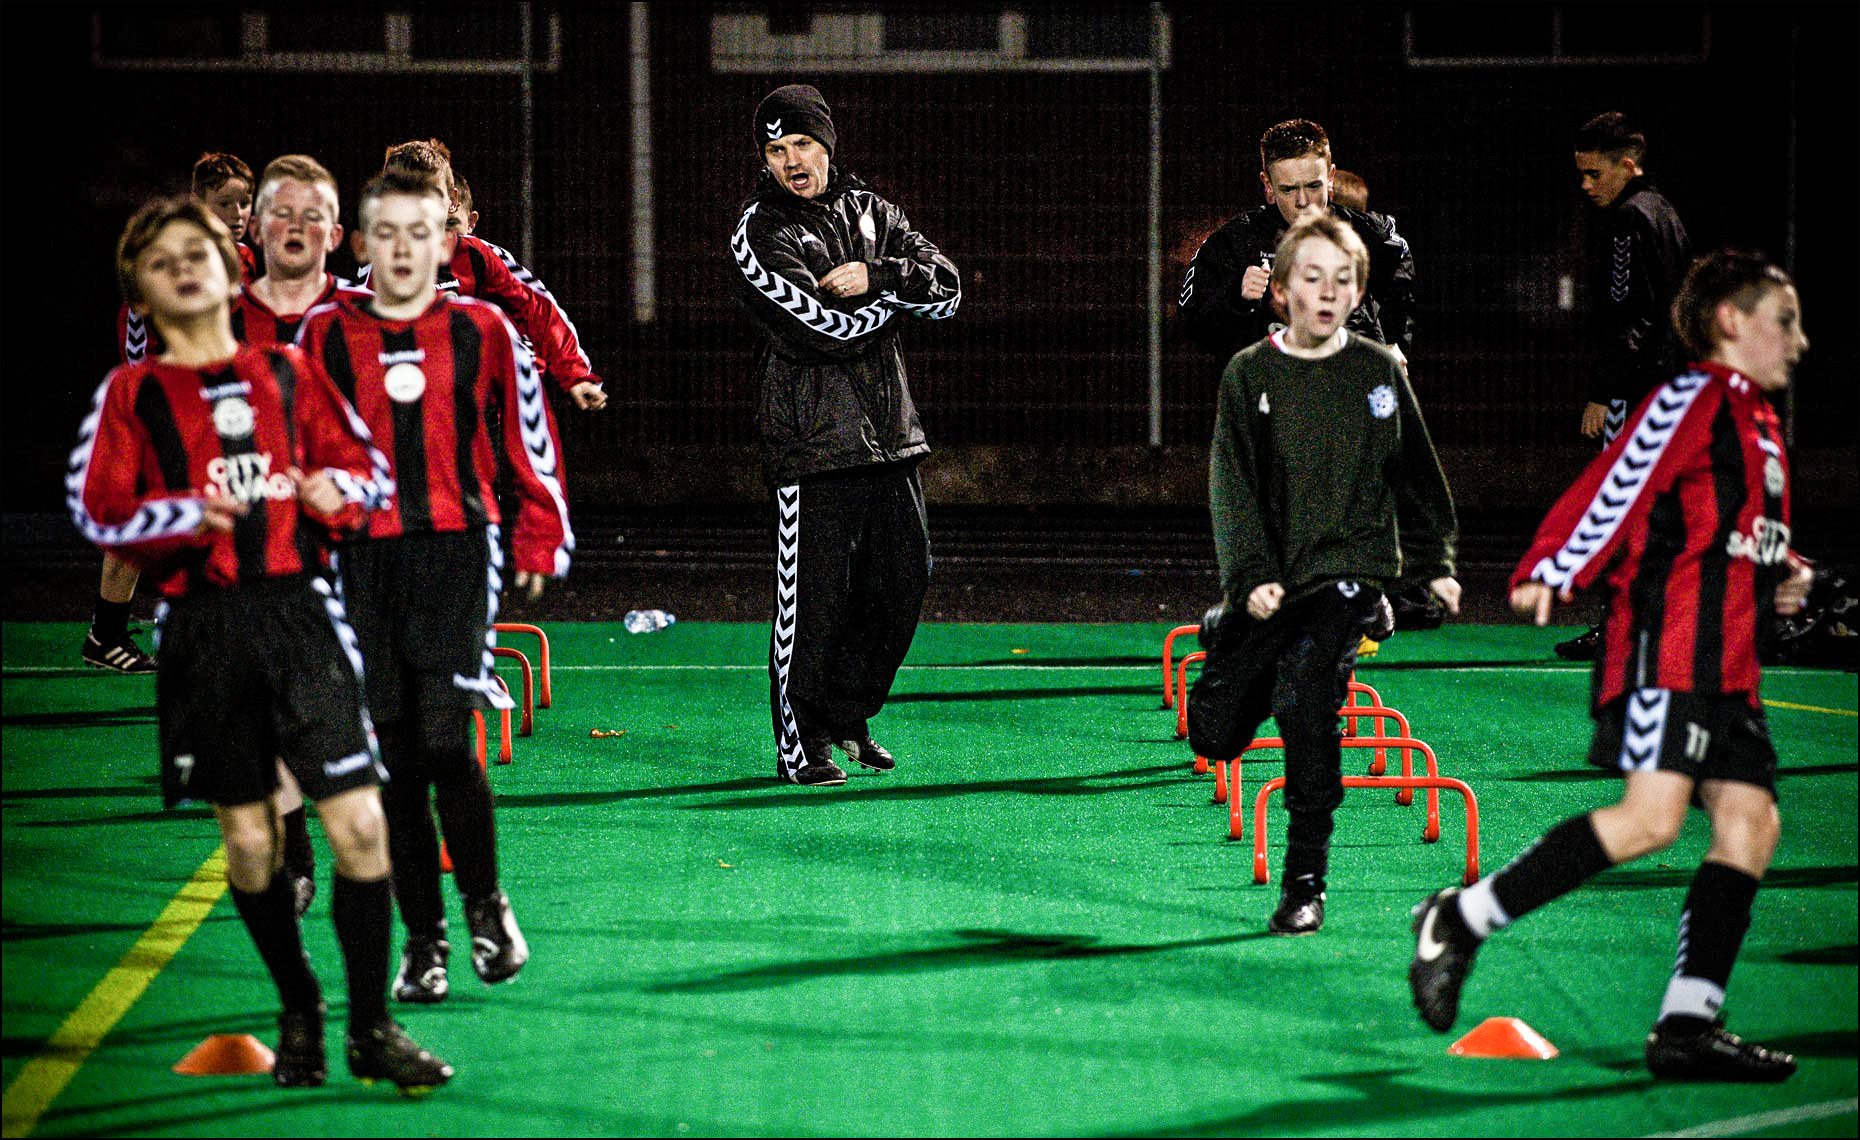 47 youth soccer football charity Scotland  ©Paul Hampton Photographer Glasgow